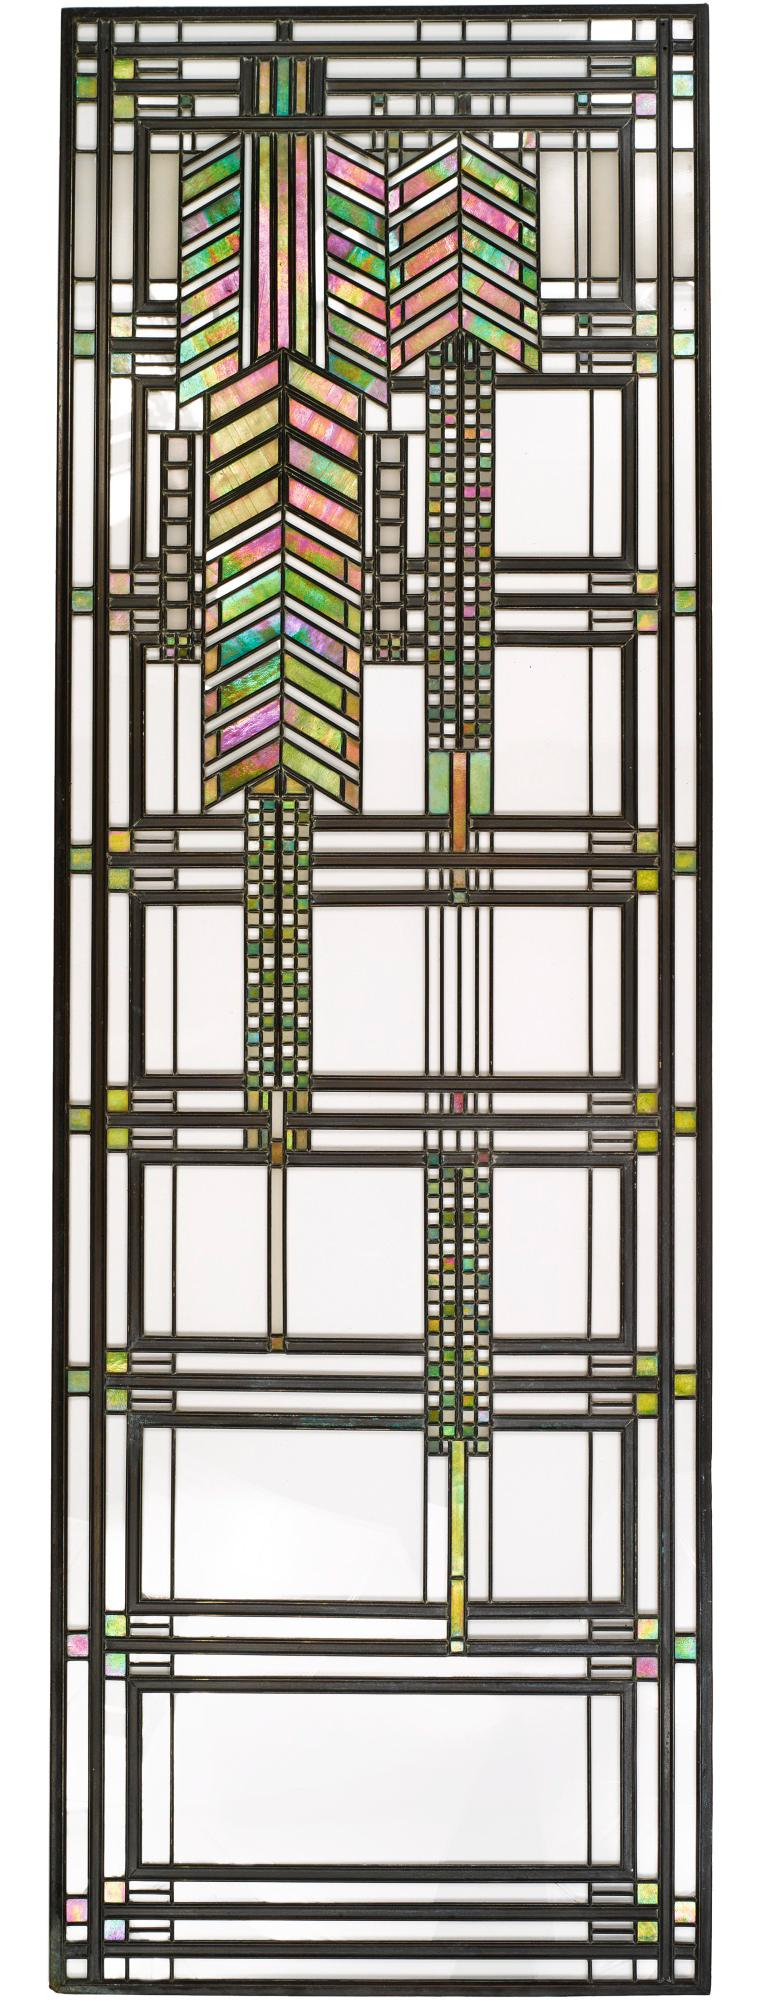 Frank Lloyd Wright Favrile Stained Glass S2300 Yamagiwa Table Lamp Lantern, 1994 In Good Condition For Sale In Brooklyn, NY